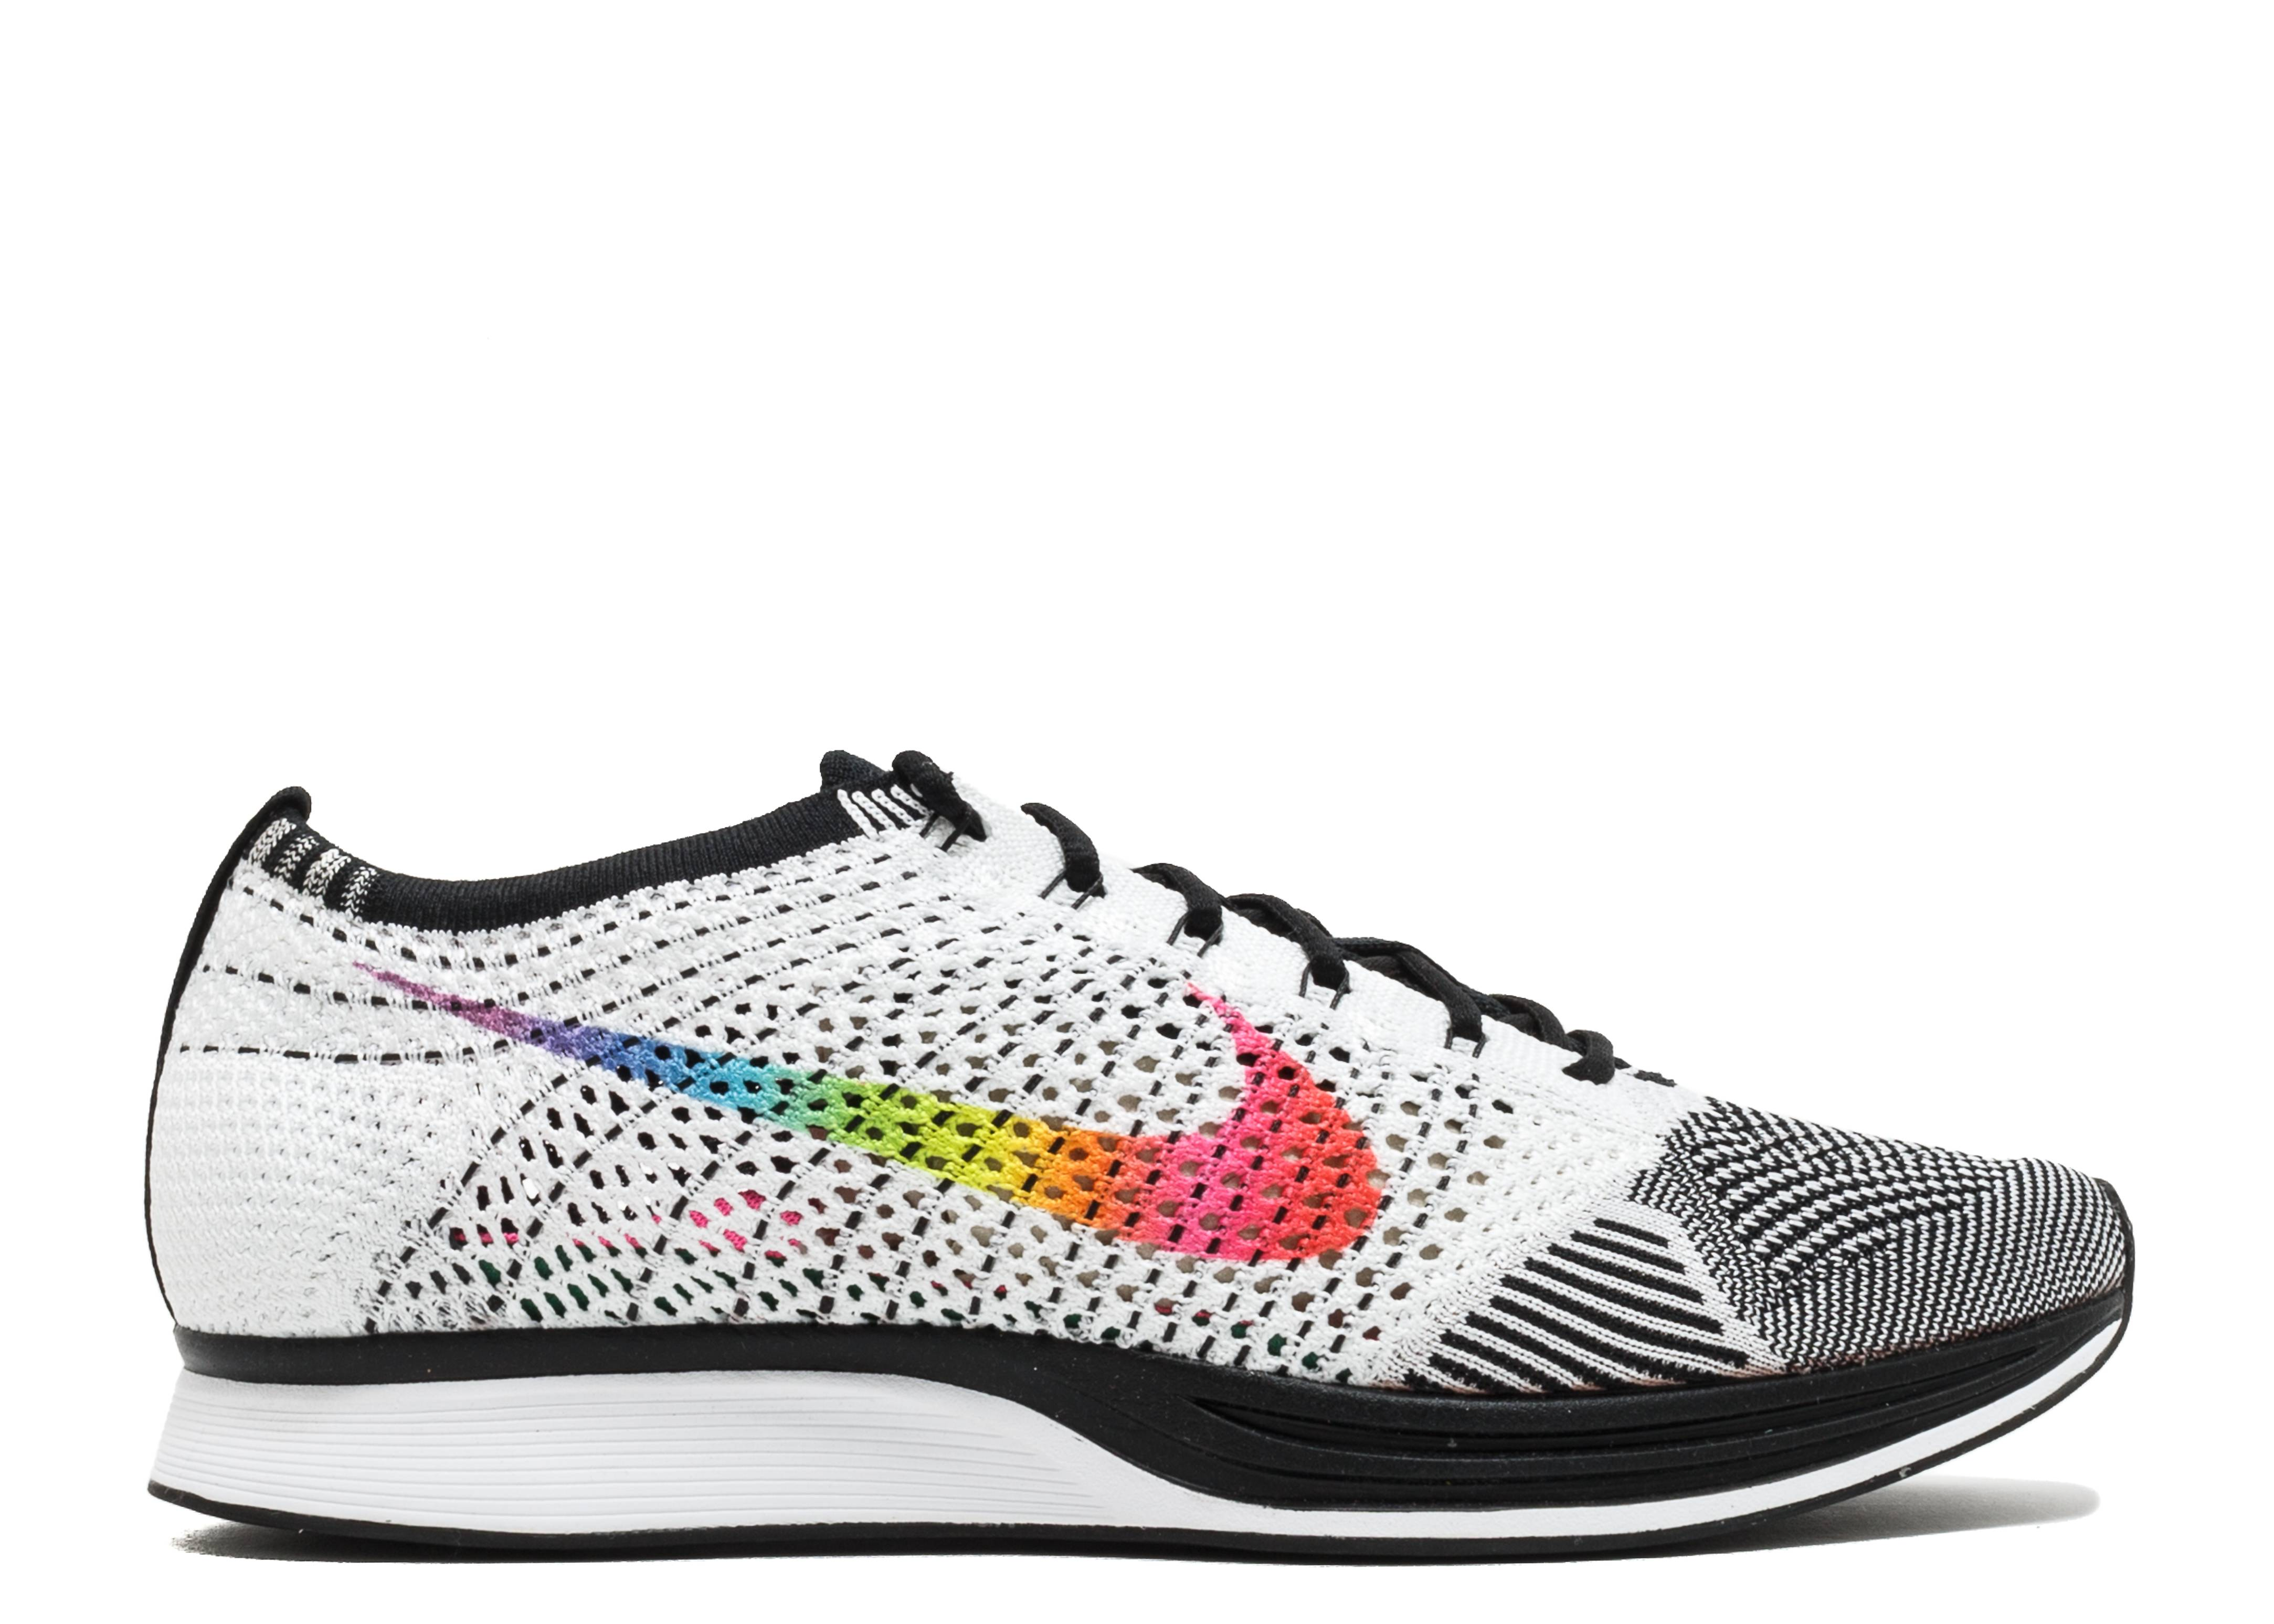 5029a530fc5b5 Flyknit Racer Be True - Nike - 902366 100 - white multi-color black ...